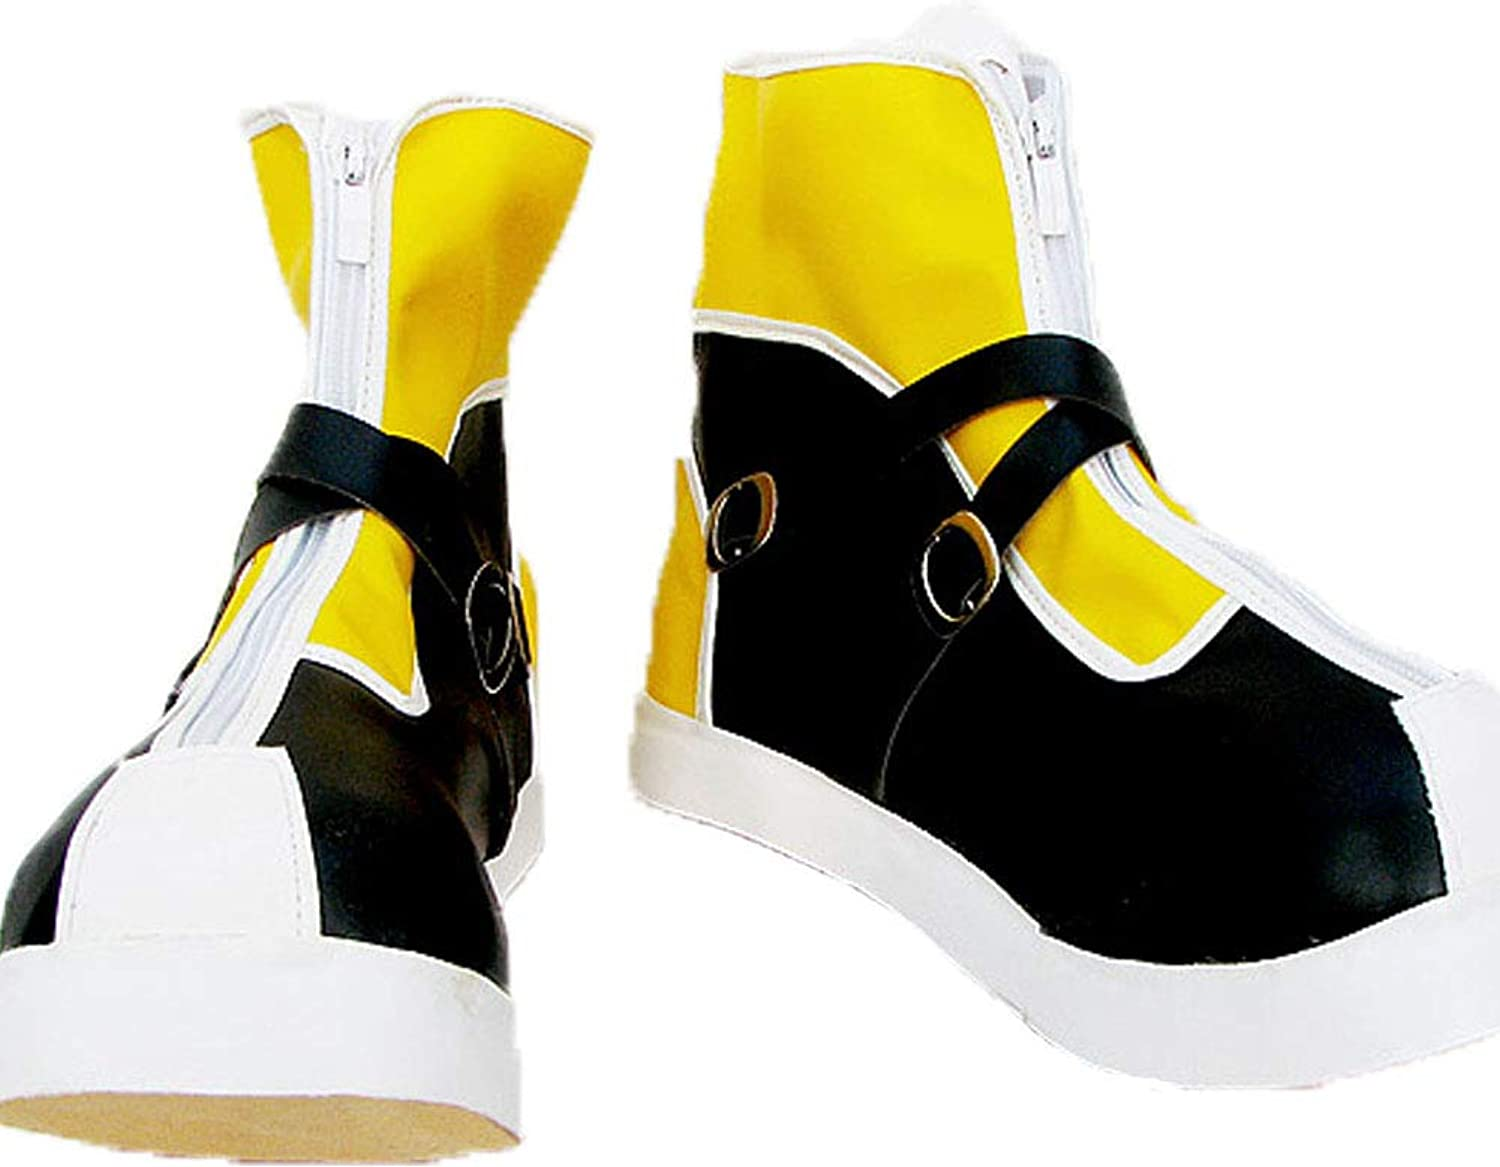 Cosplay Boots shoes for Kingdom Hearts 2 Sora